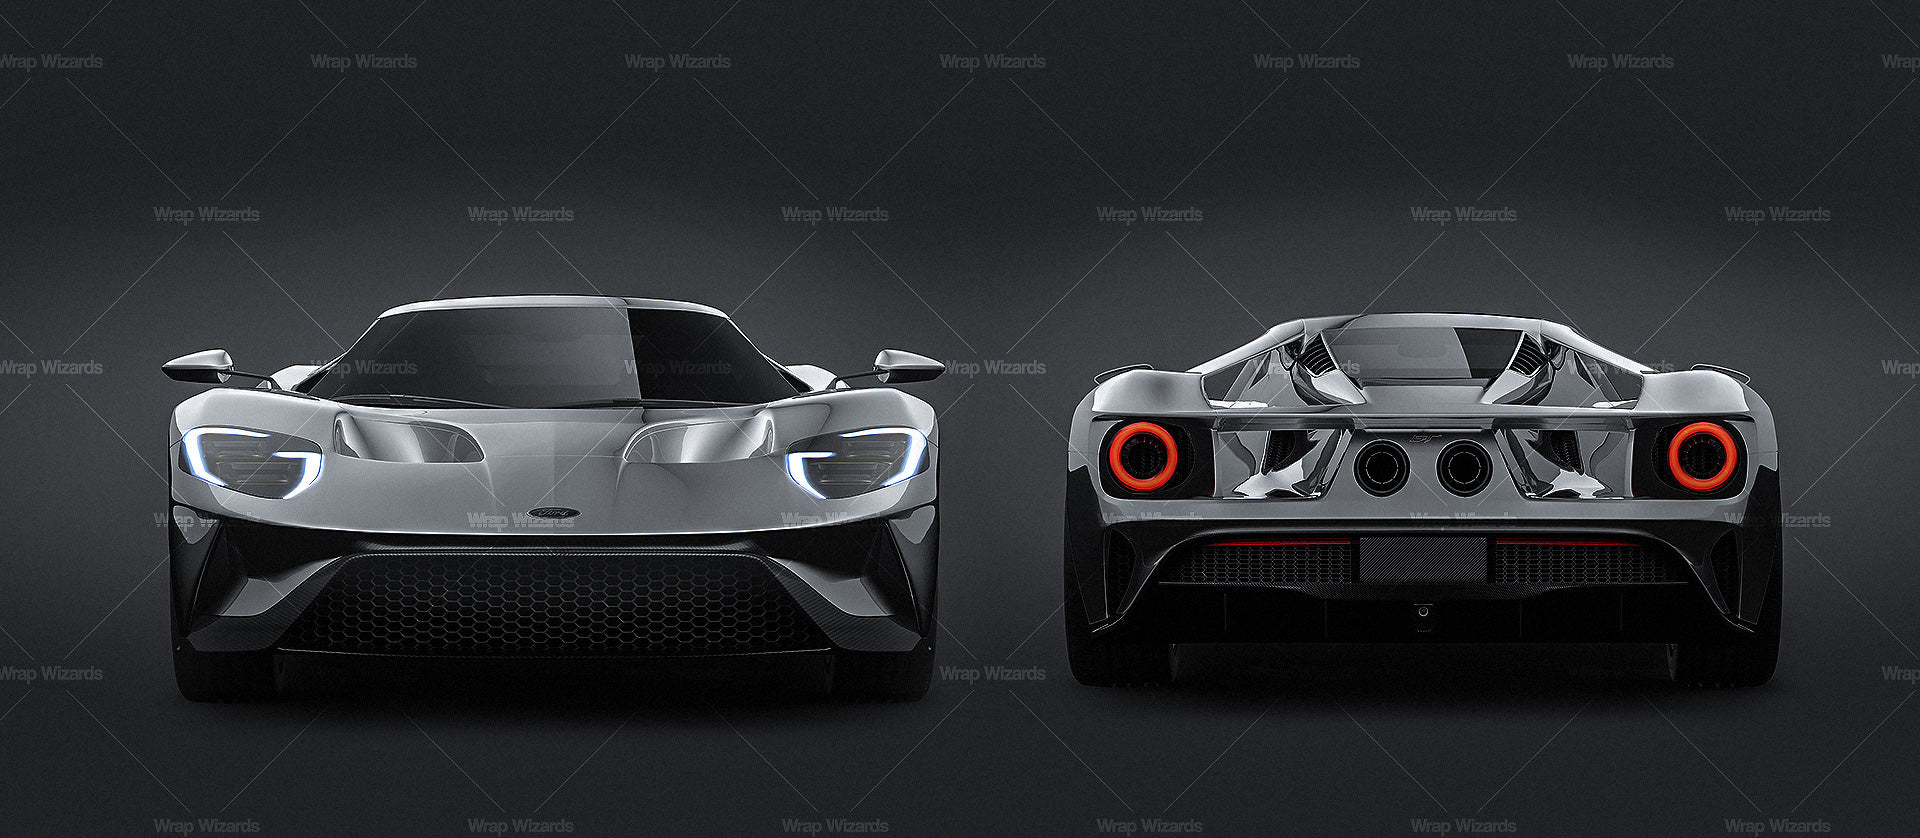 Ford GT 2017 all sides Car Mockup Template.psd